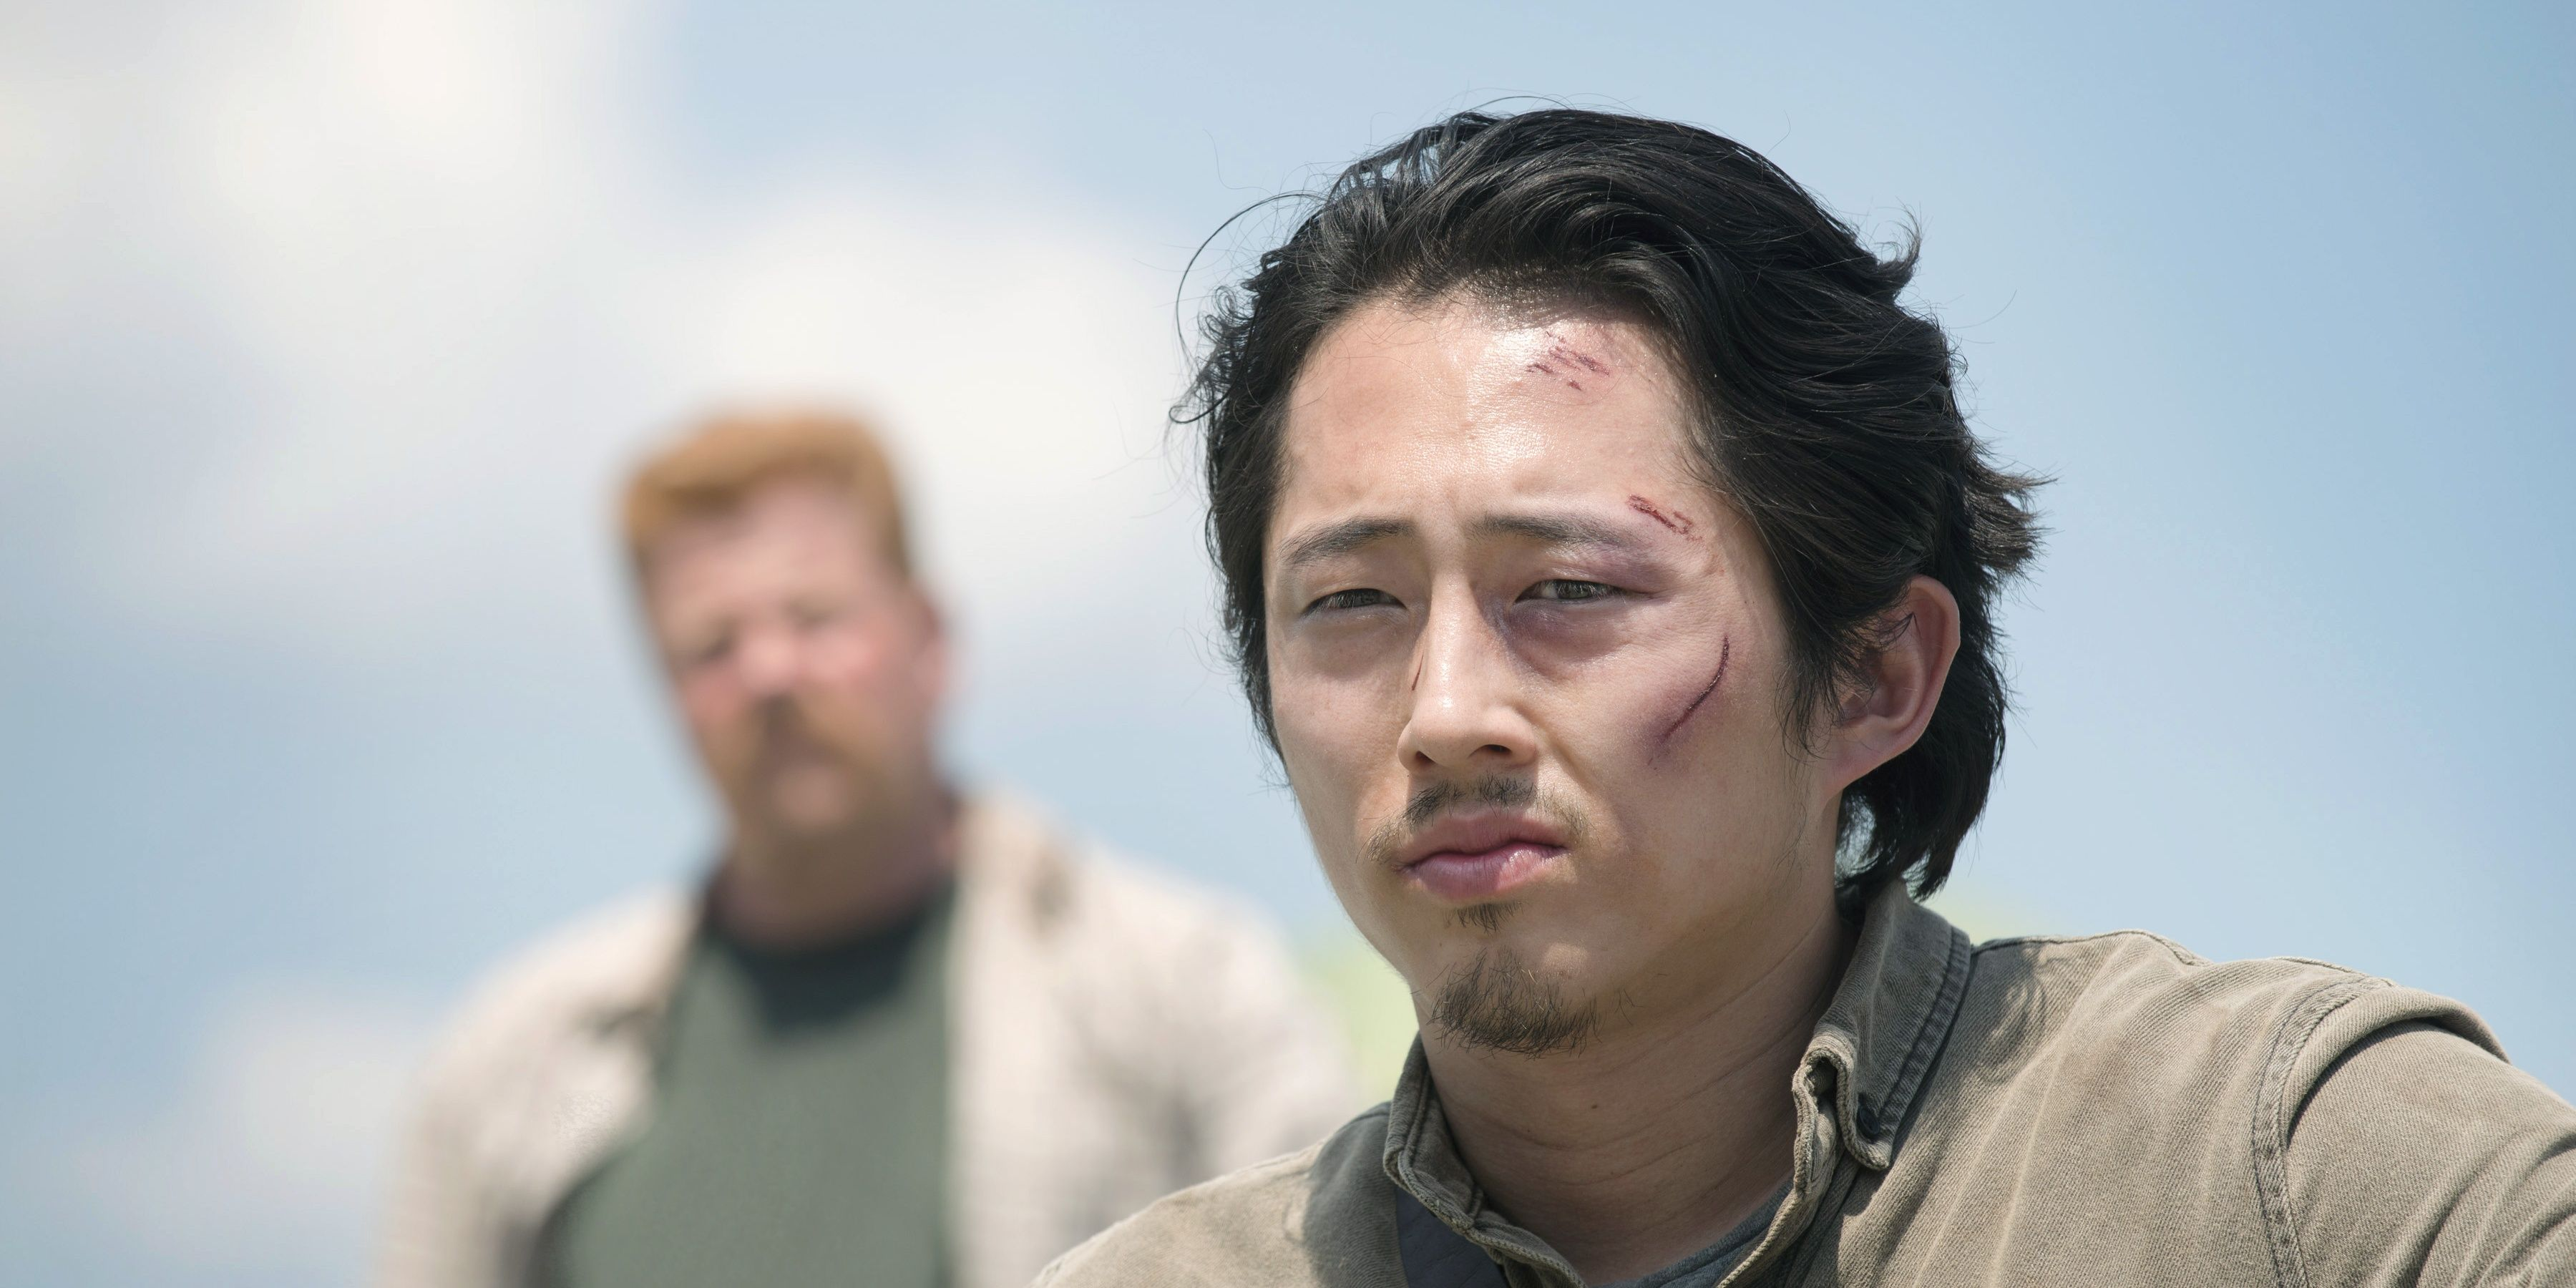 Former The Walking Dead Star Reveals Why He Stopped Watching